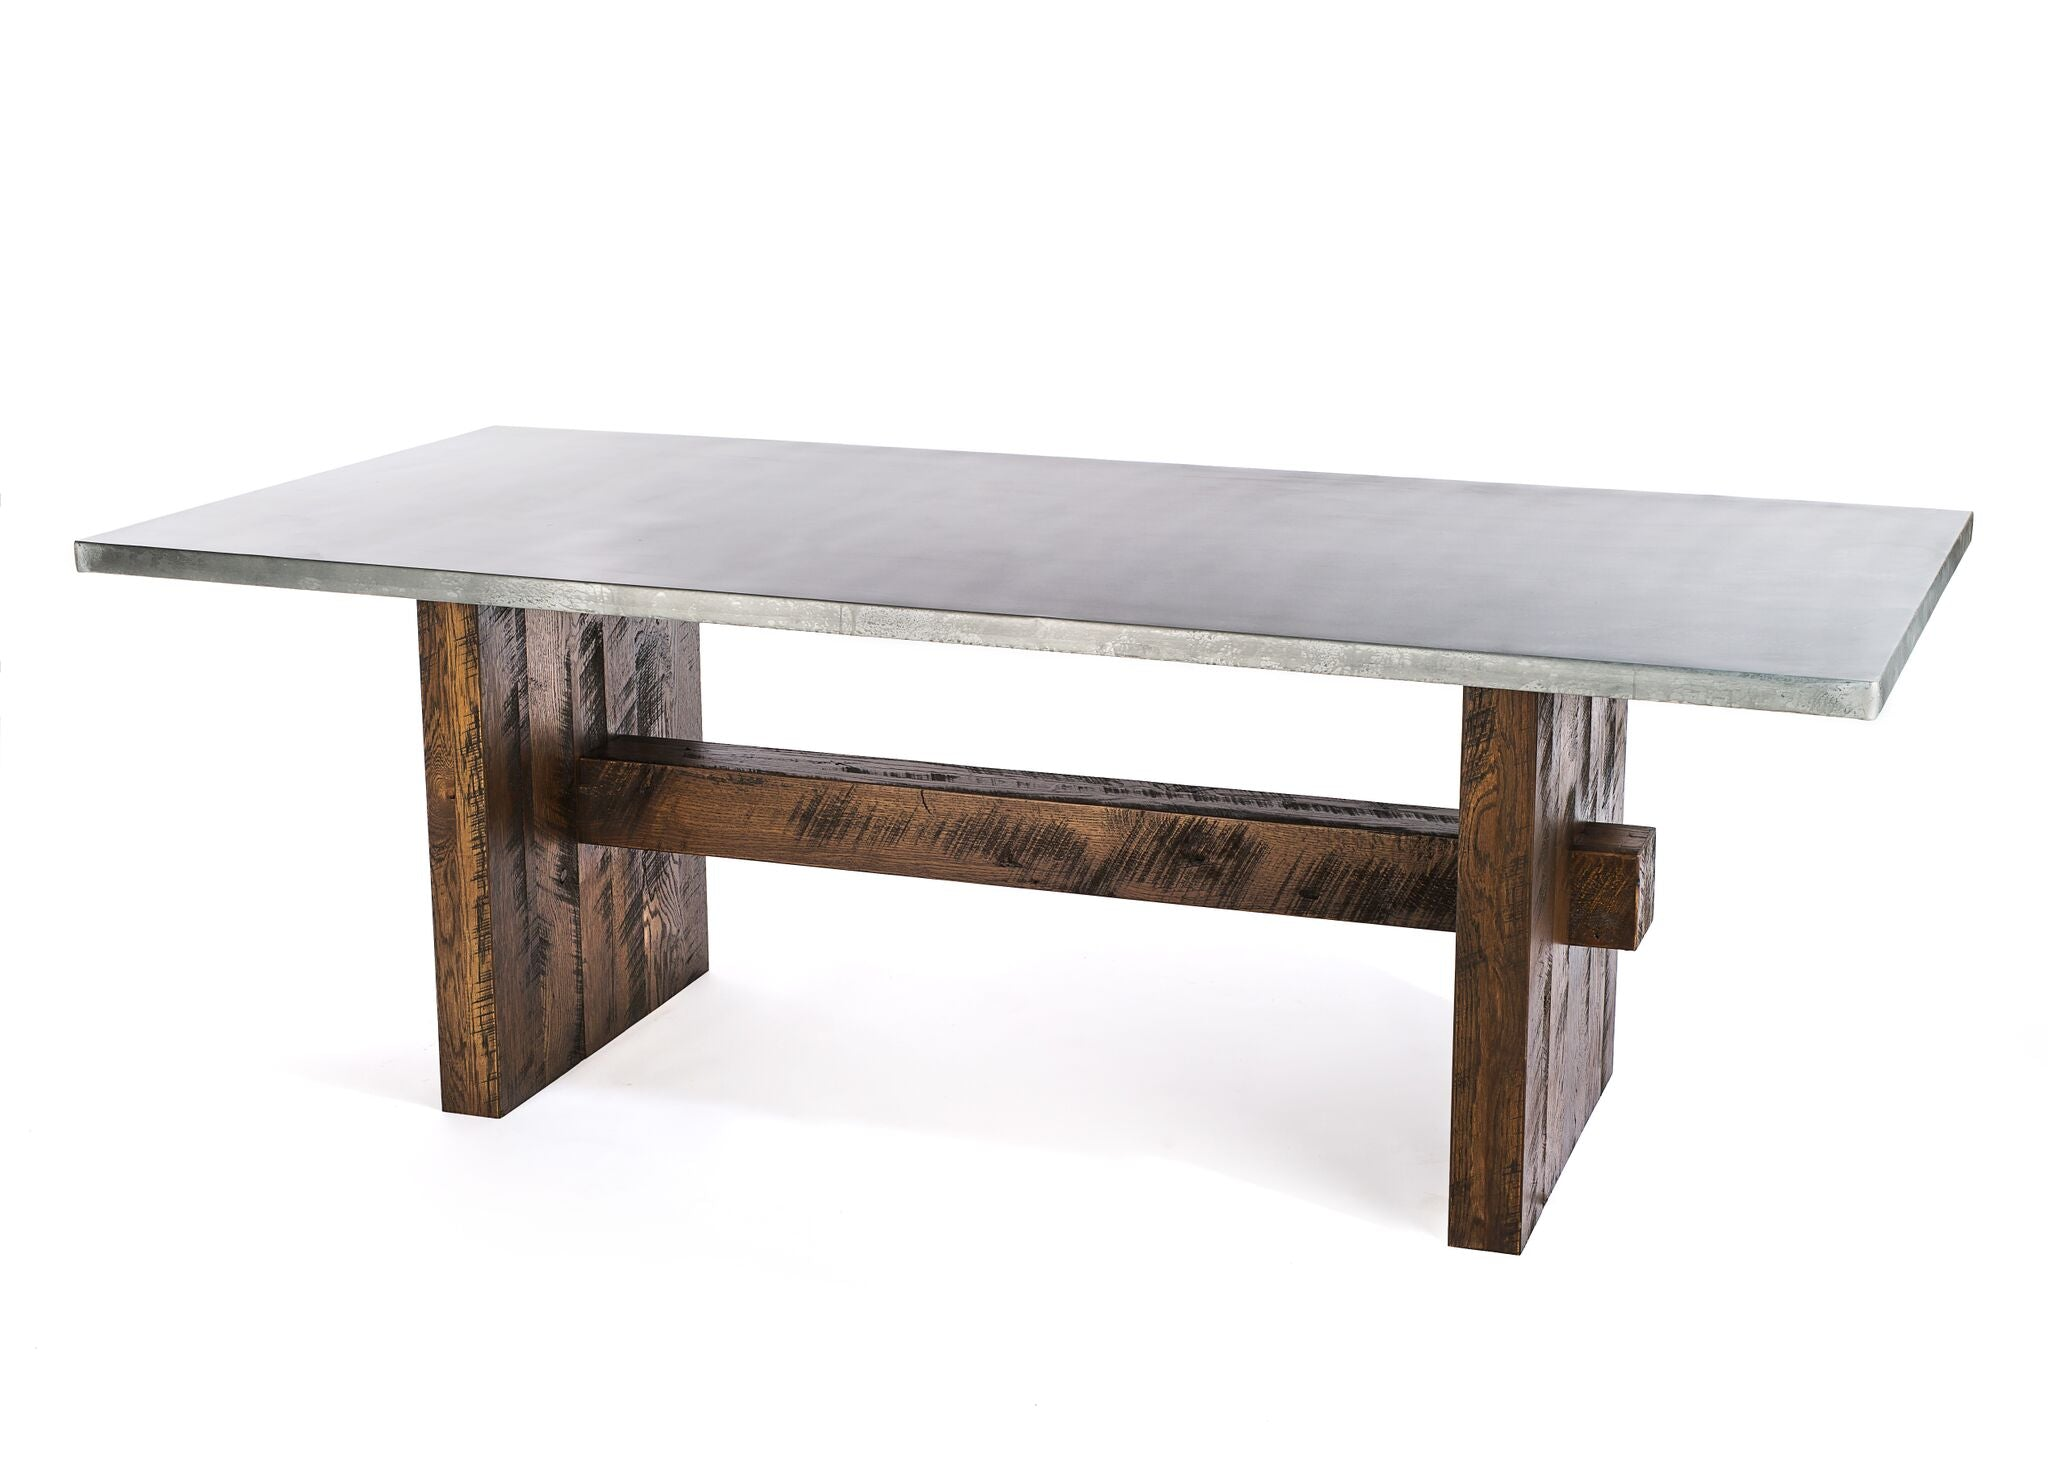 "Zinc Rectangular Table | Redford Trestle Table | CLASSIC | Americana on Reclaimed Oak | 72""L 37""W 30""H 